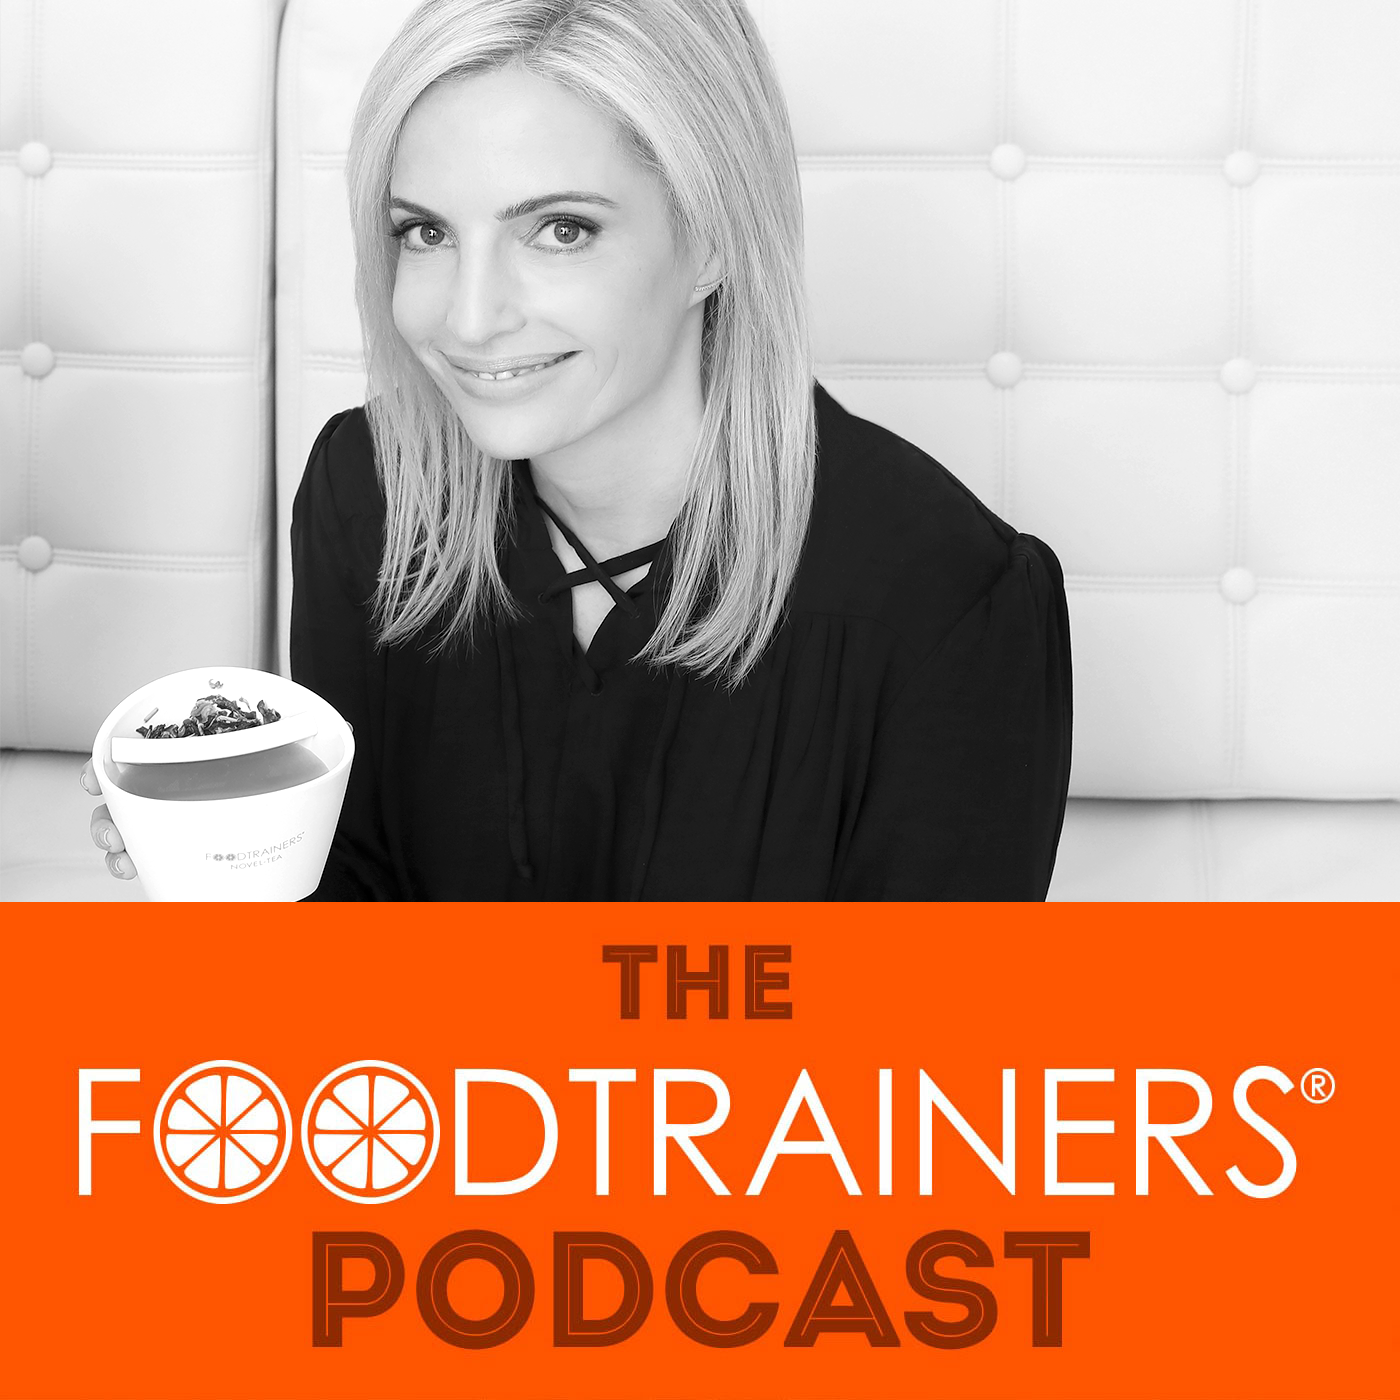 Artwork for podcast Foodtrainers